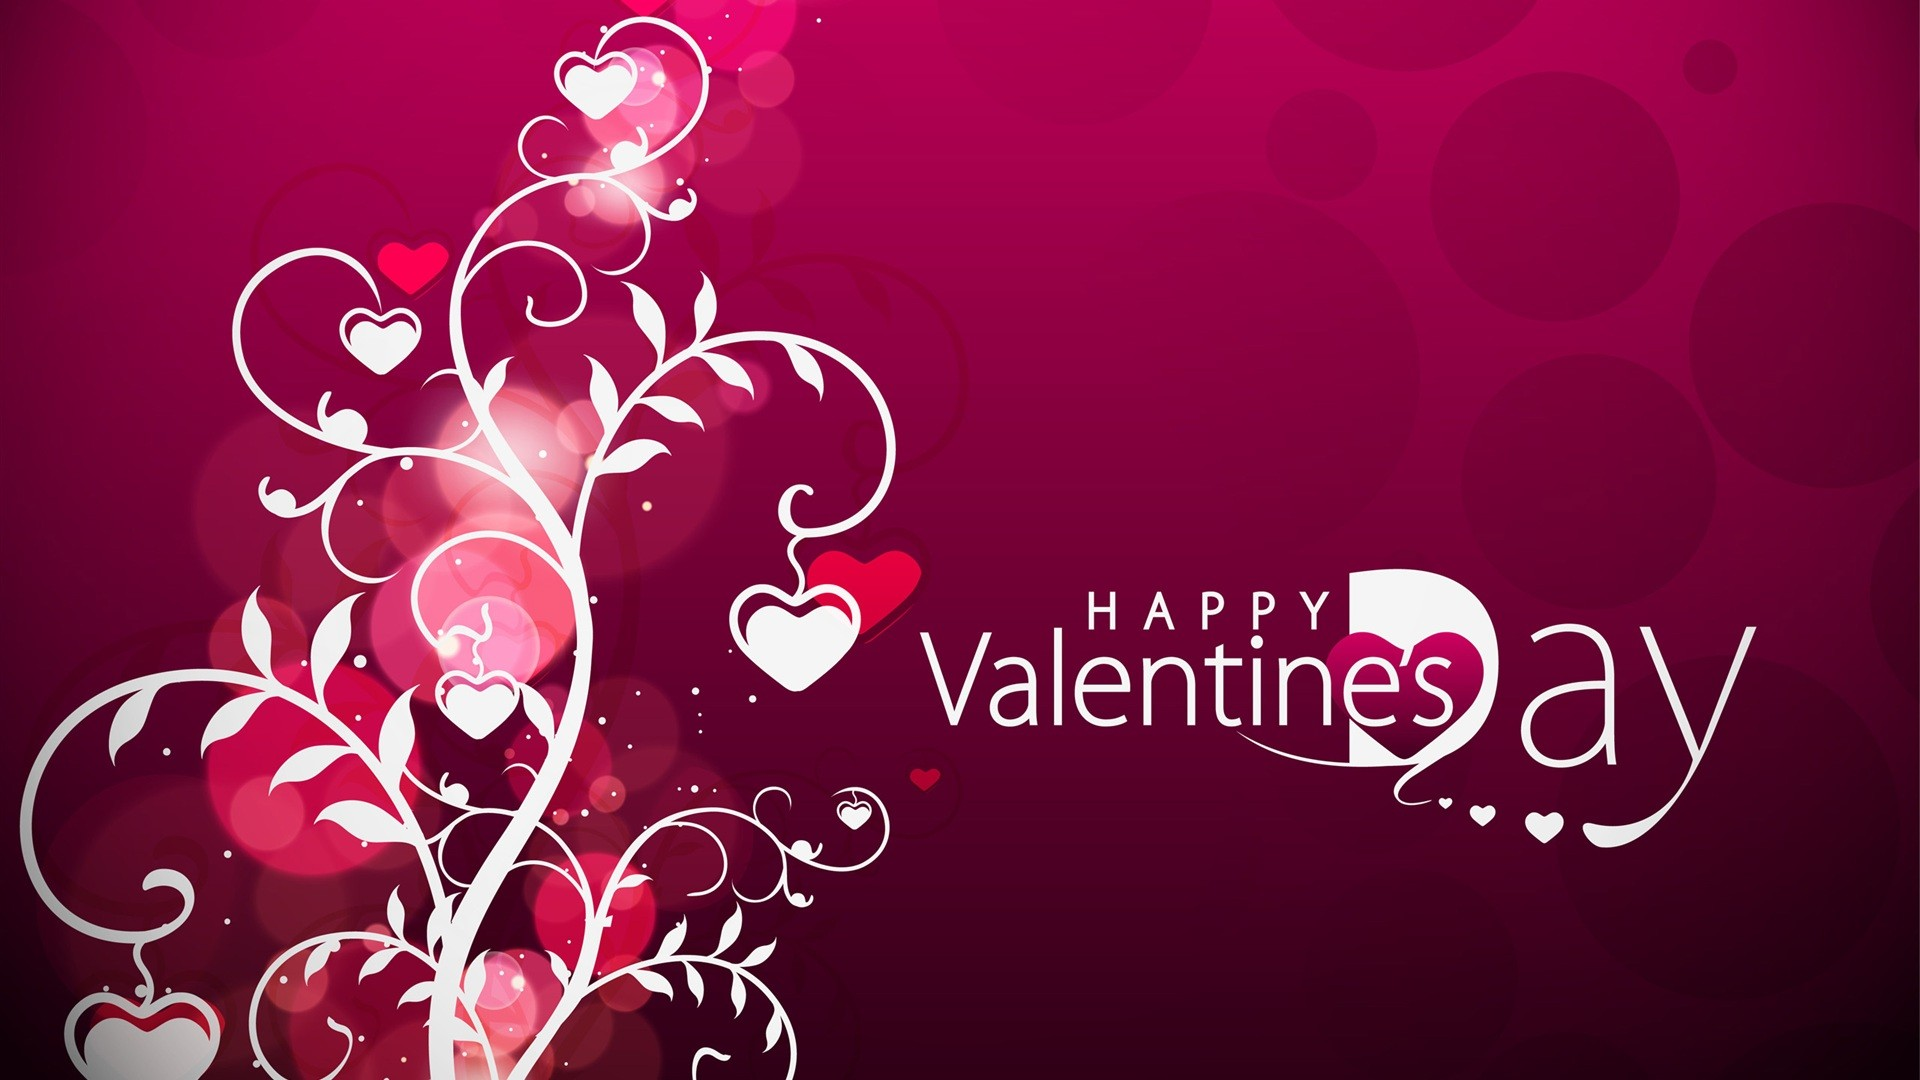 Happy Valentines Day HD Wallpapers Backgrounds Pictures 1920x1080